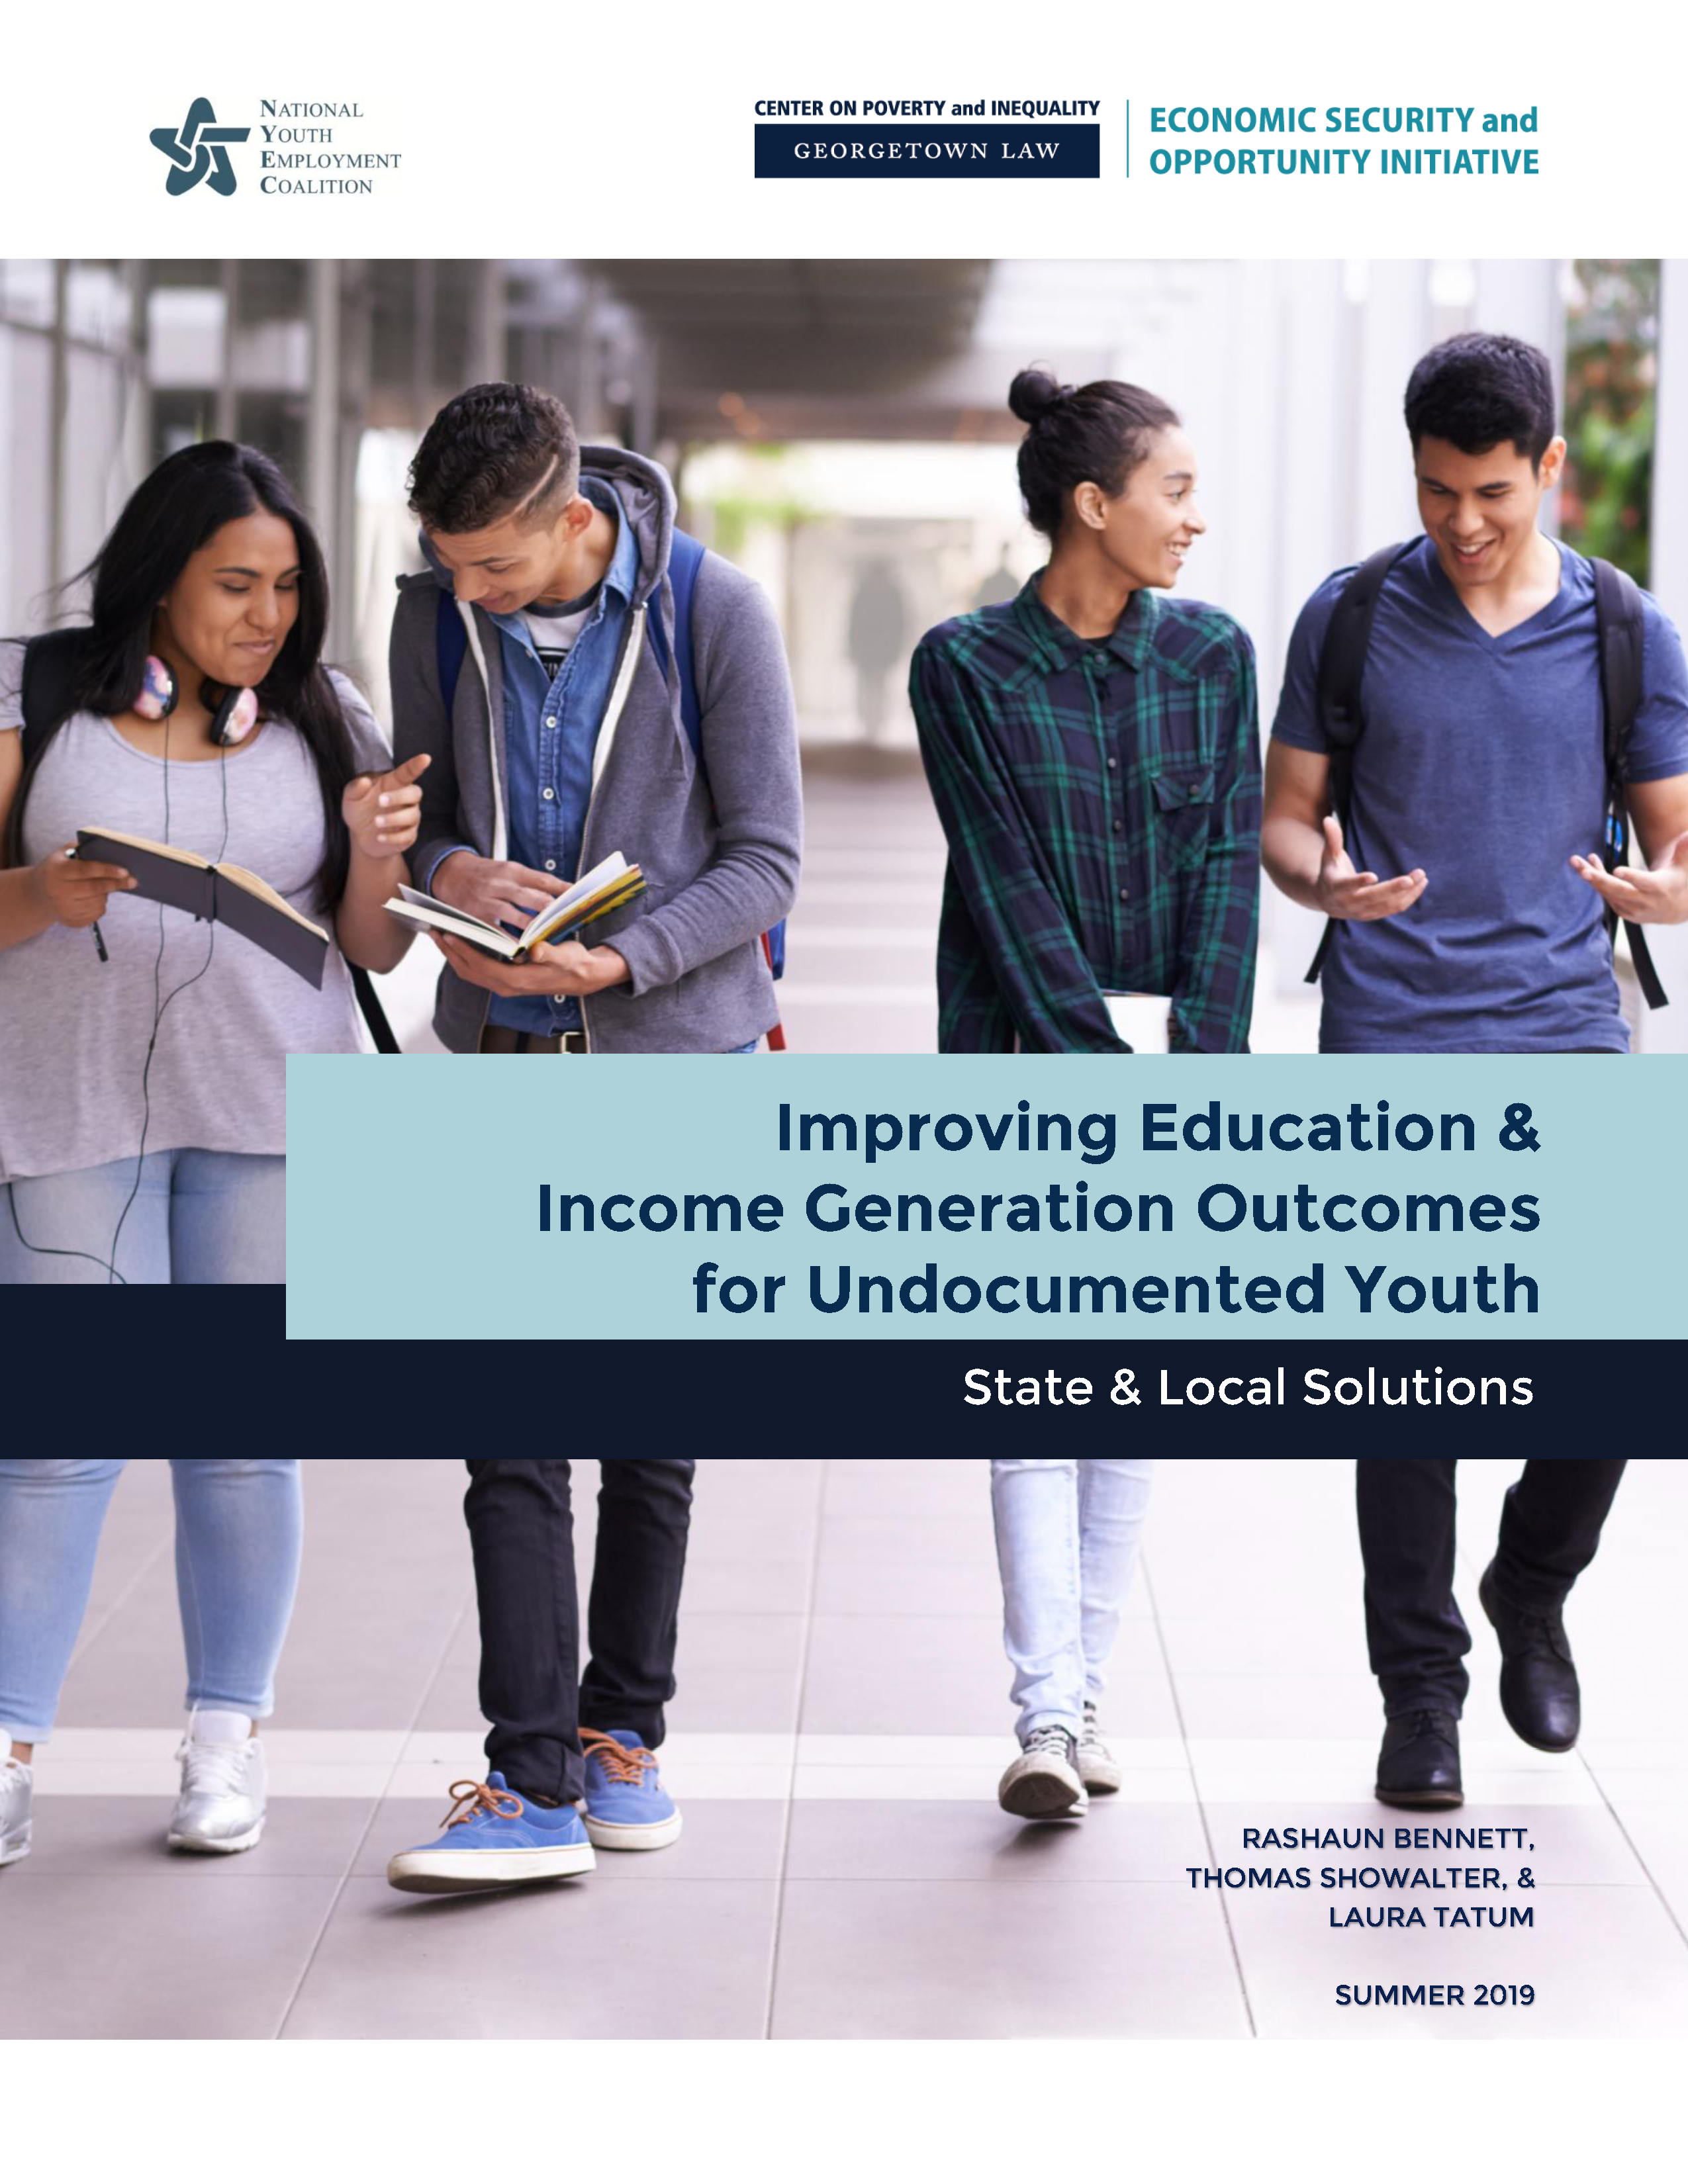 GCPI-NYEC - Education and Income Undocumented Youth Report, Cover - 20190829